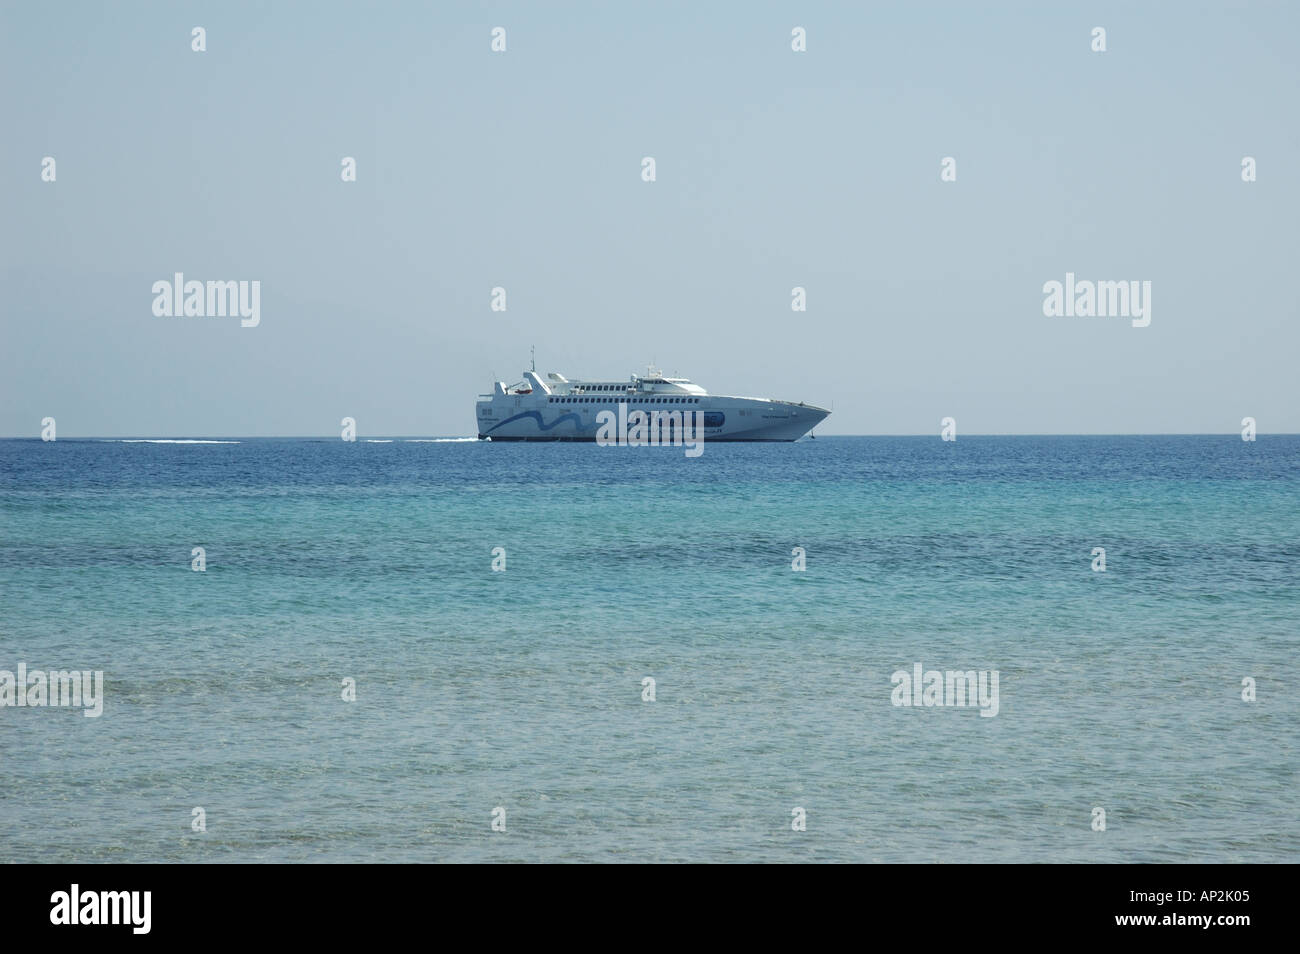 The fast ferry which travels daily from the port of Aqaba in Jordan to the port of Nuweiba in Egypt - Stock Image